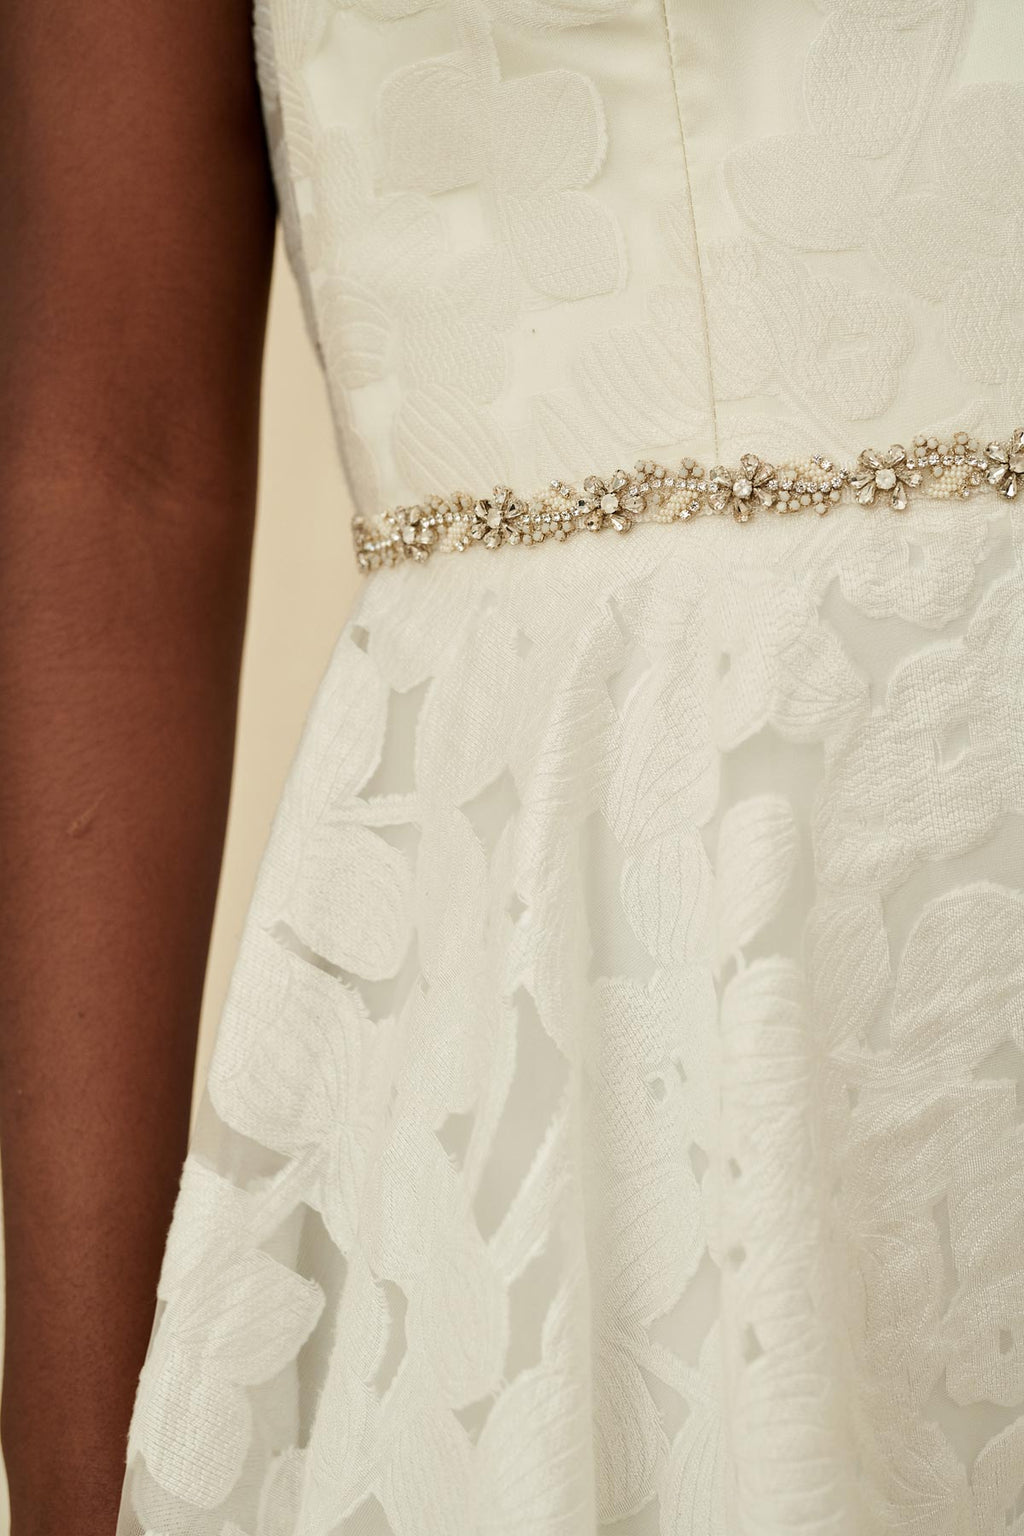 A delicate bridal belt with silver cased teardrop crystals, seed beads , and opaque glass beads in a swirling floral pattern